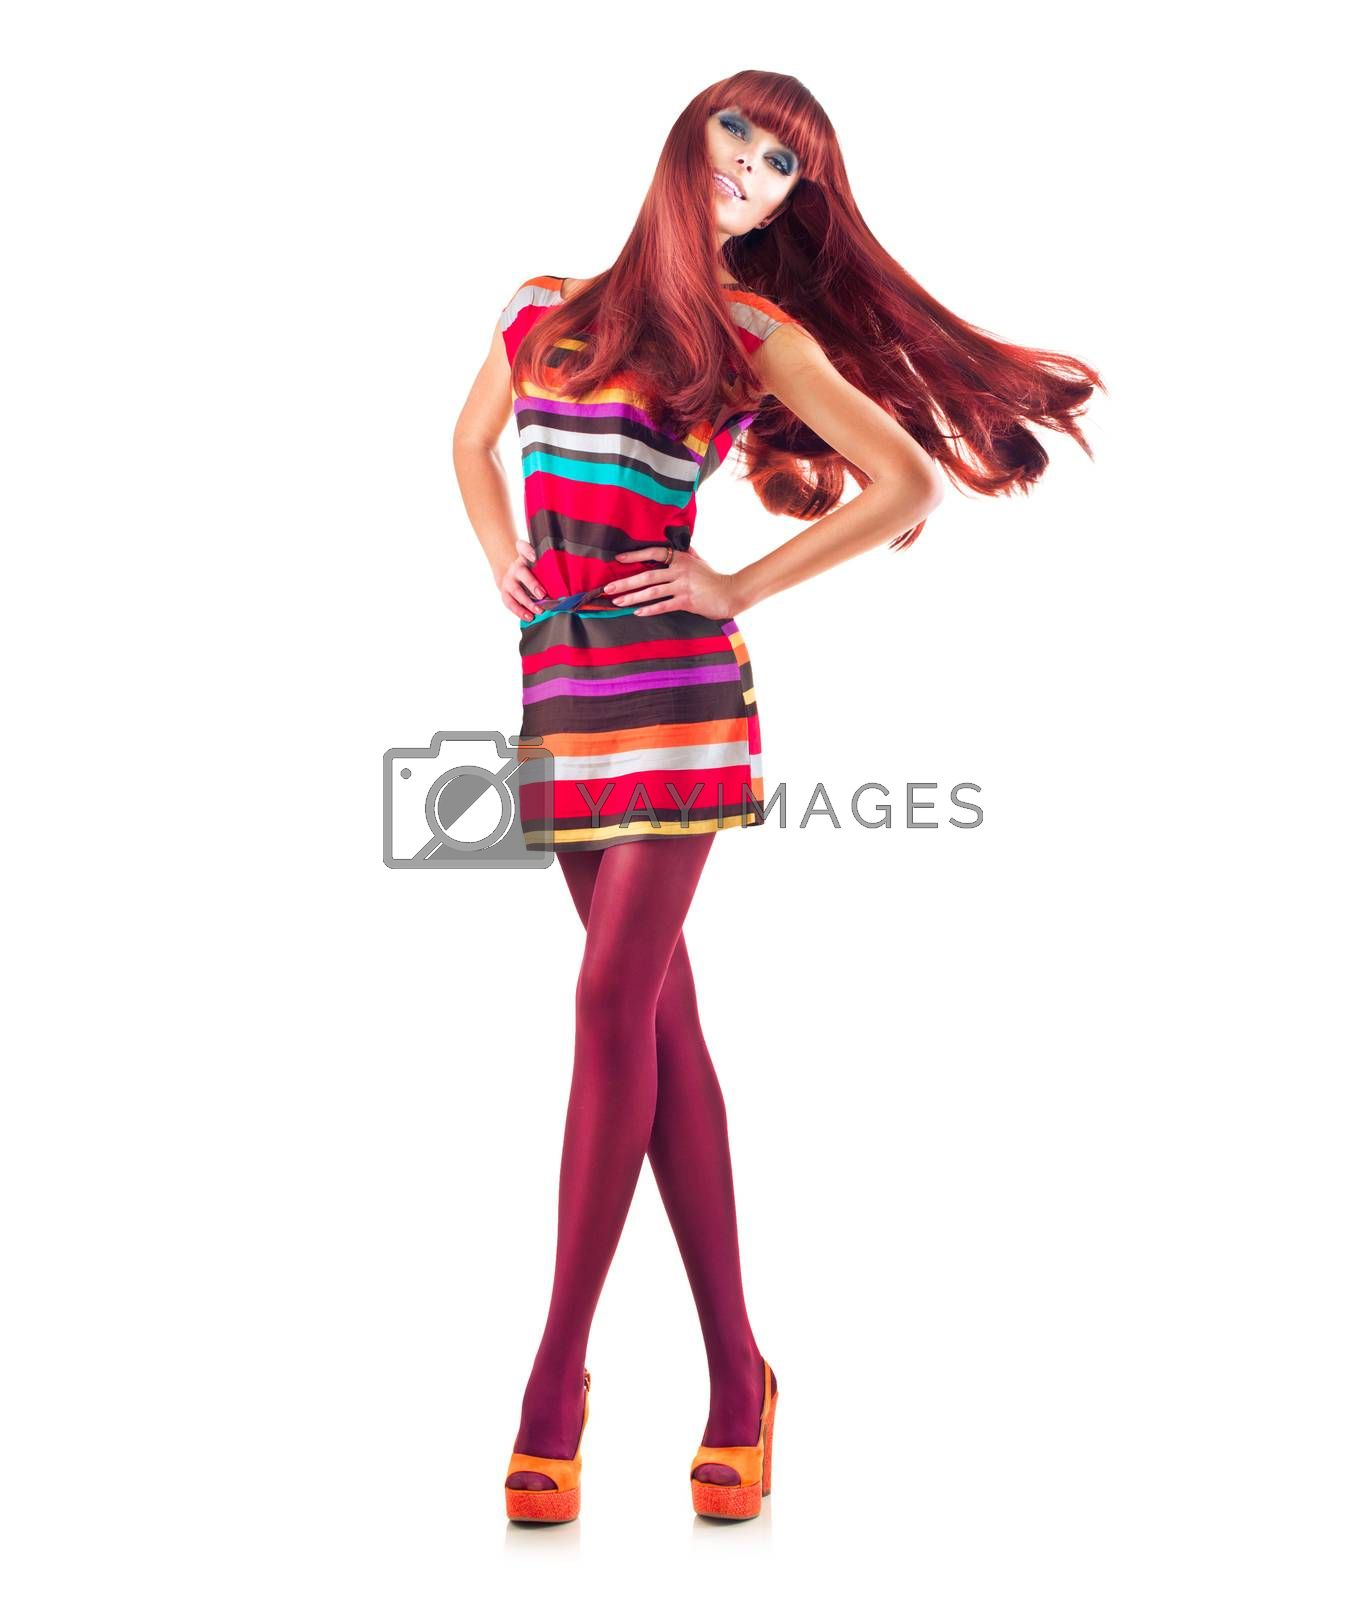 Full Length Portrait of Sexy Model Girl with Long Red Hair